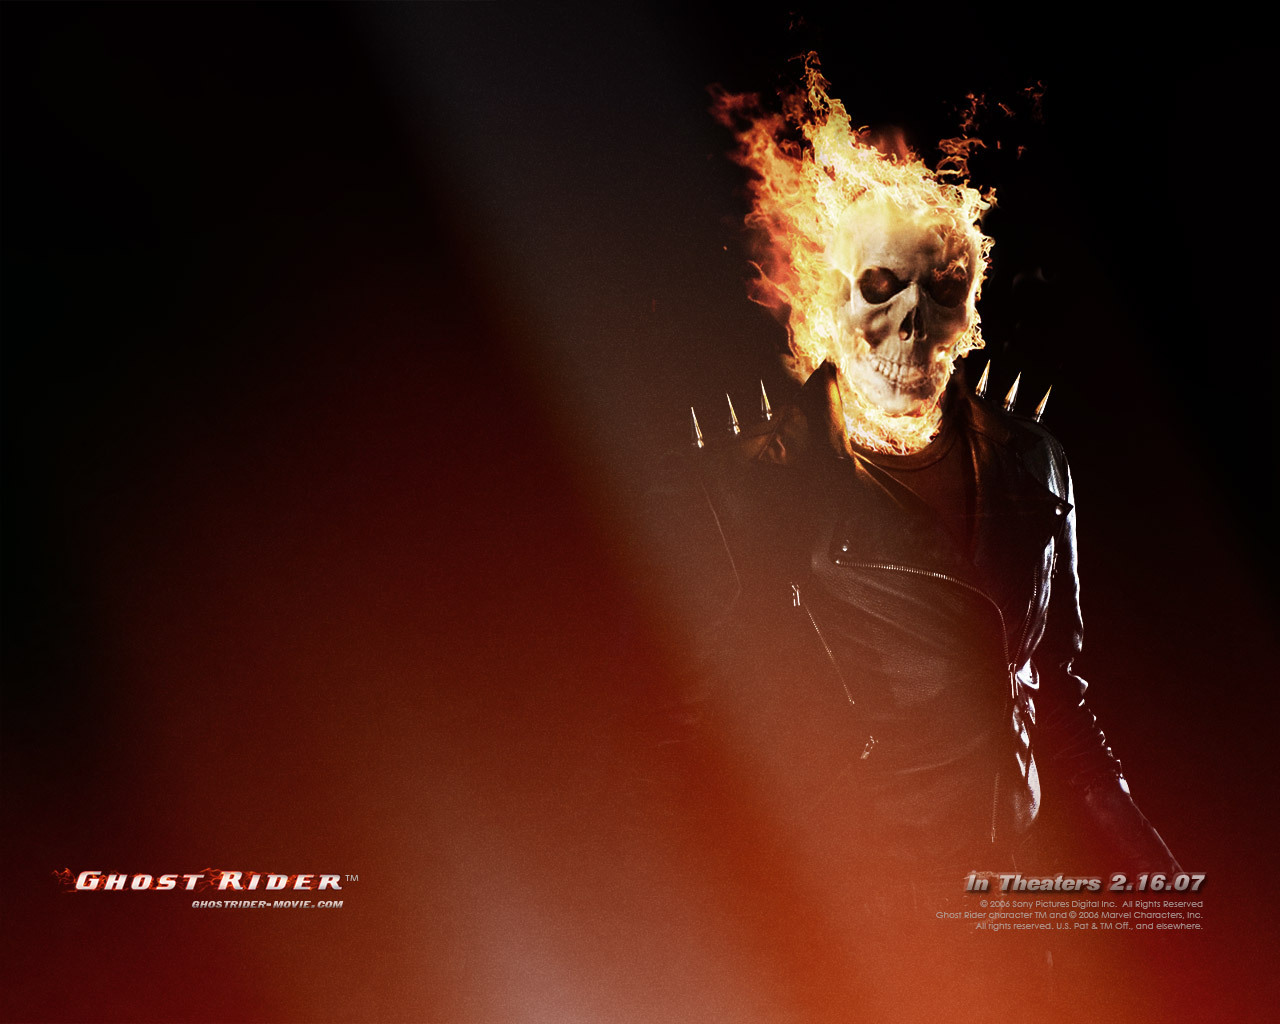 ghost rider images ghost akartsky hd wallpaper and